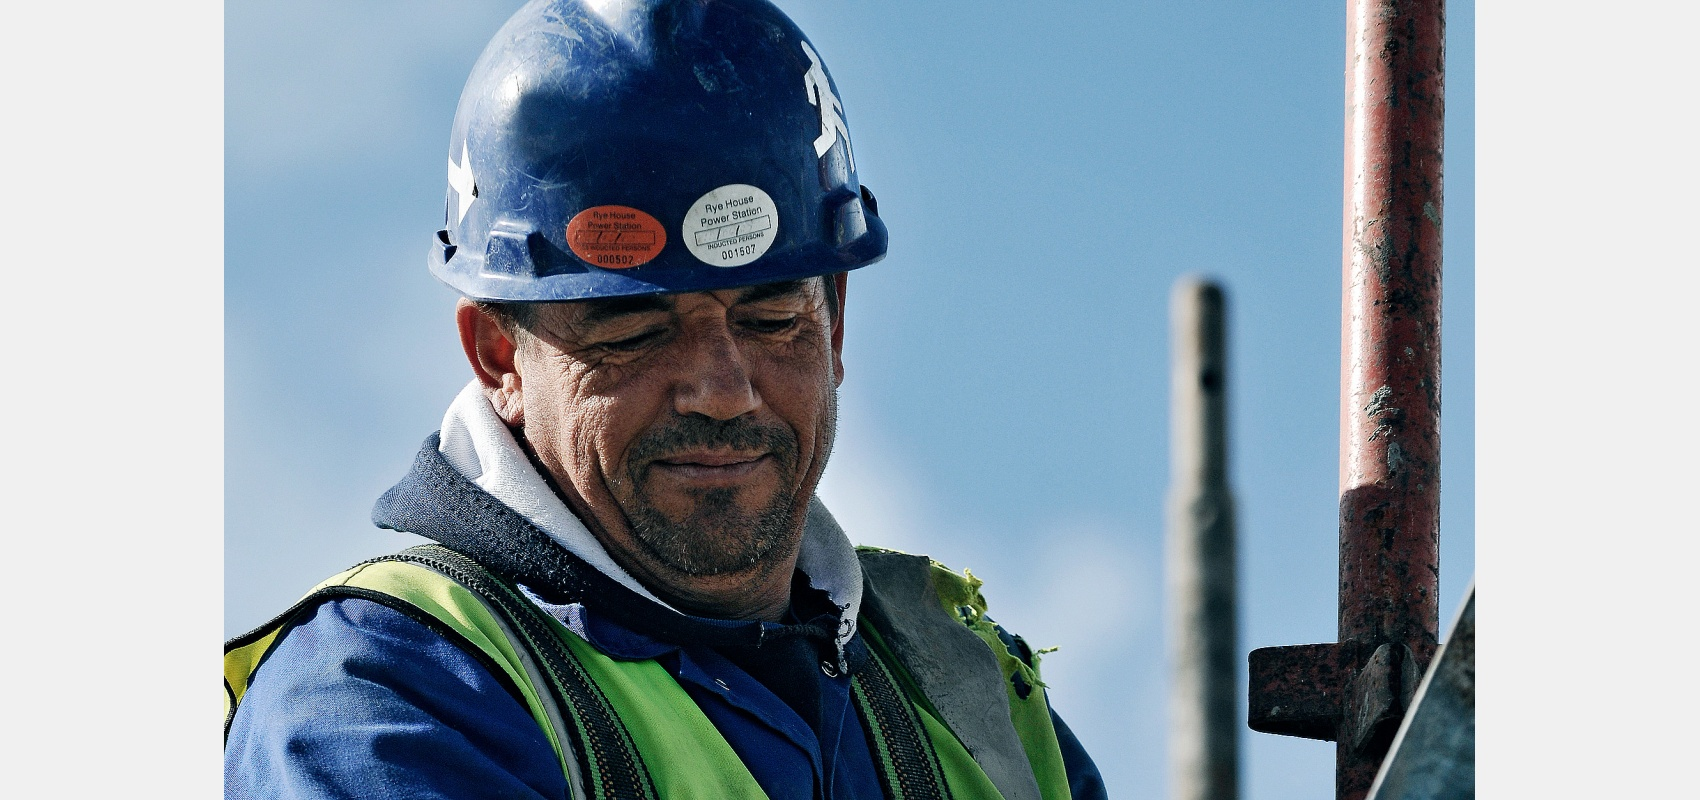 Construction worker - portrait of steeplejack, characterful face.